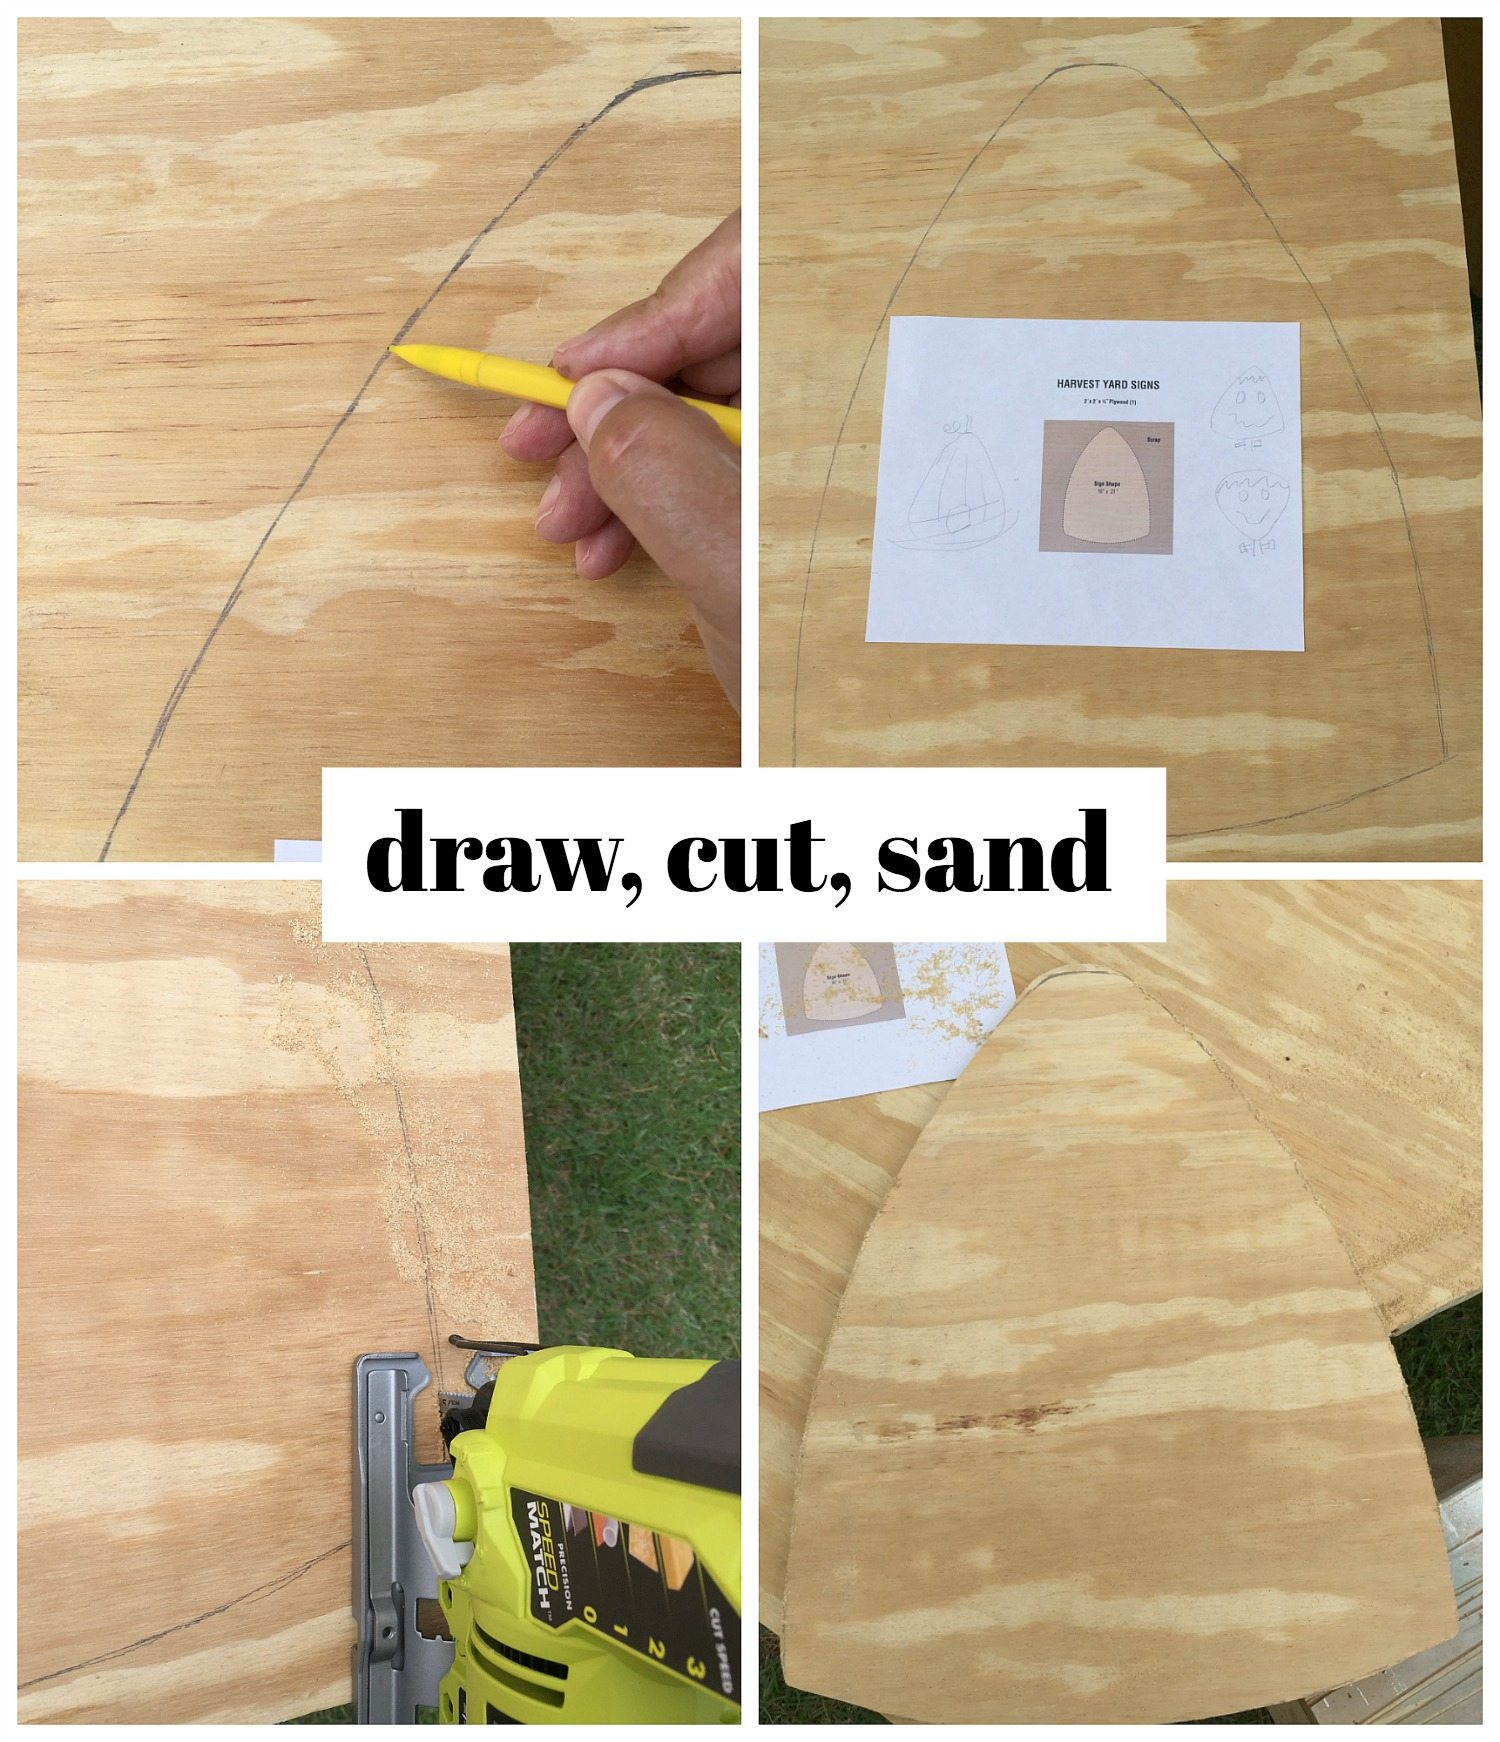 draw cut and sand you harvest yard sign